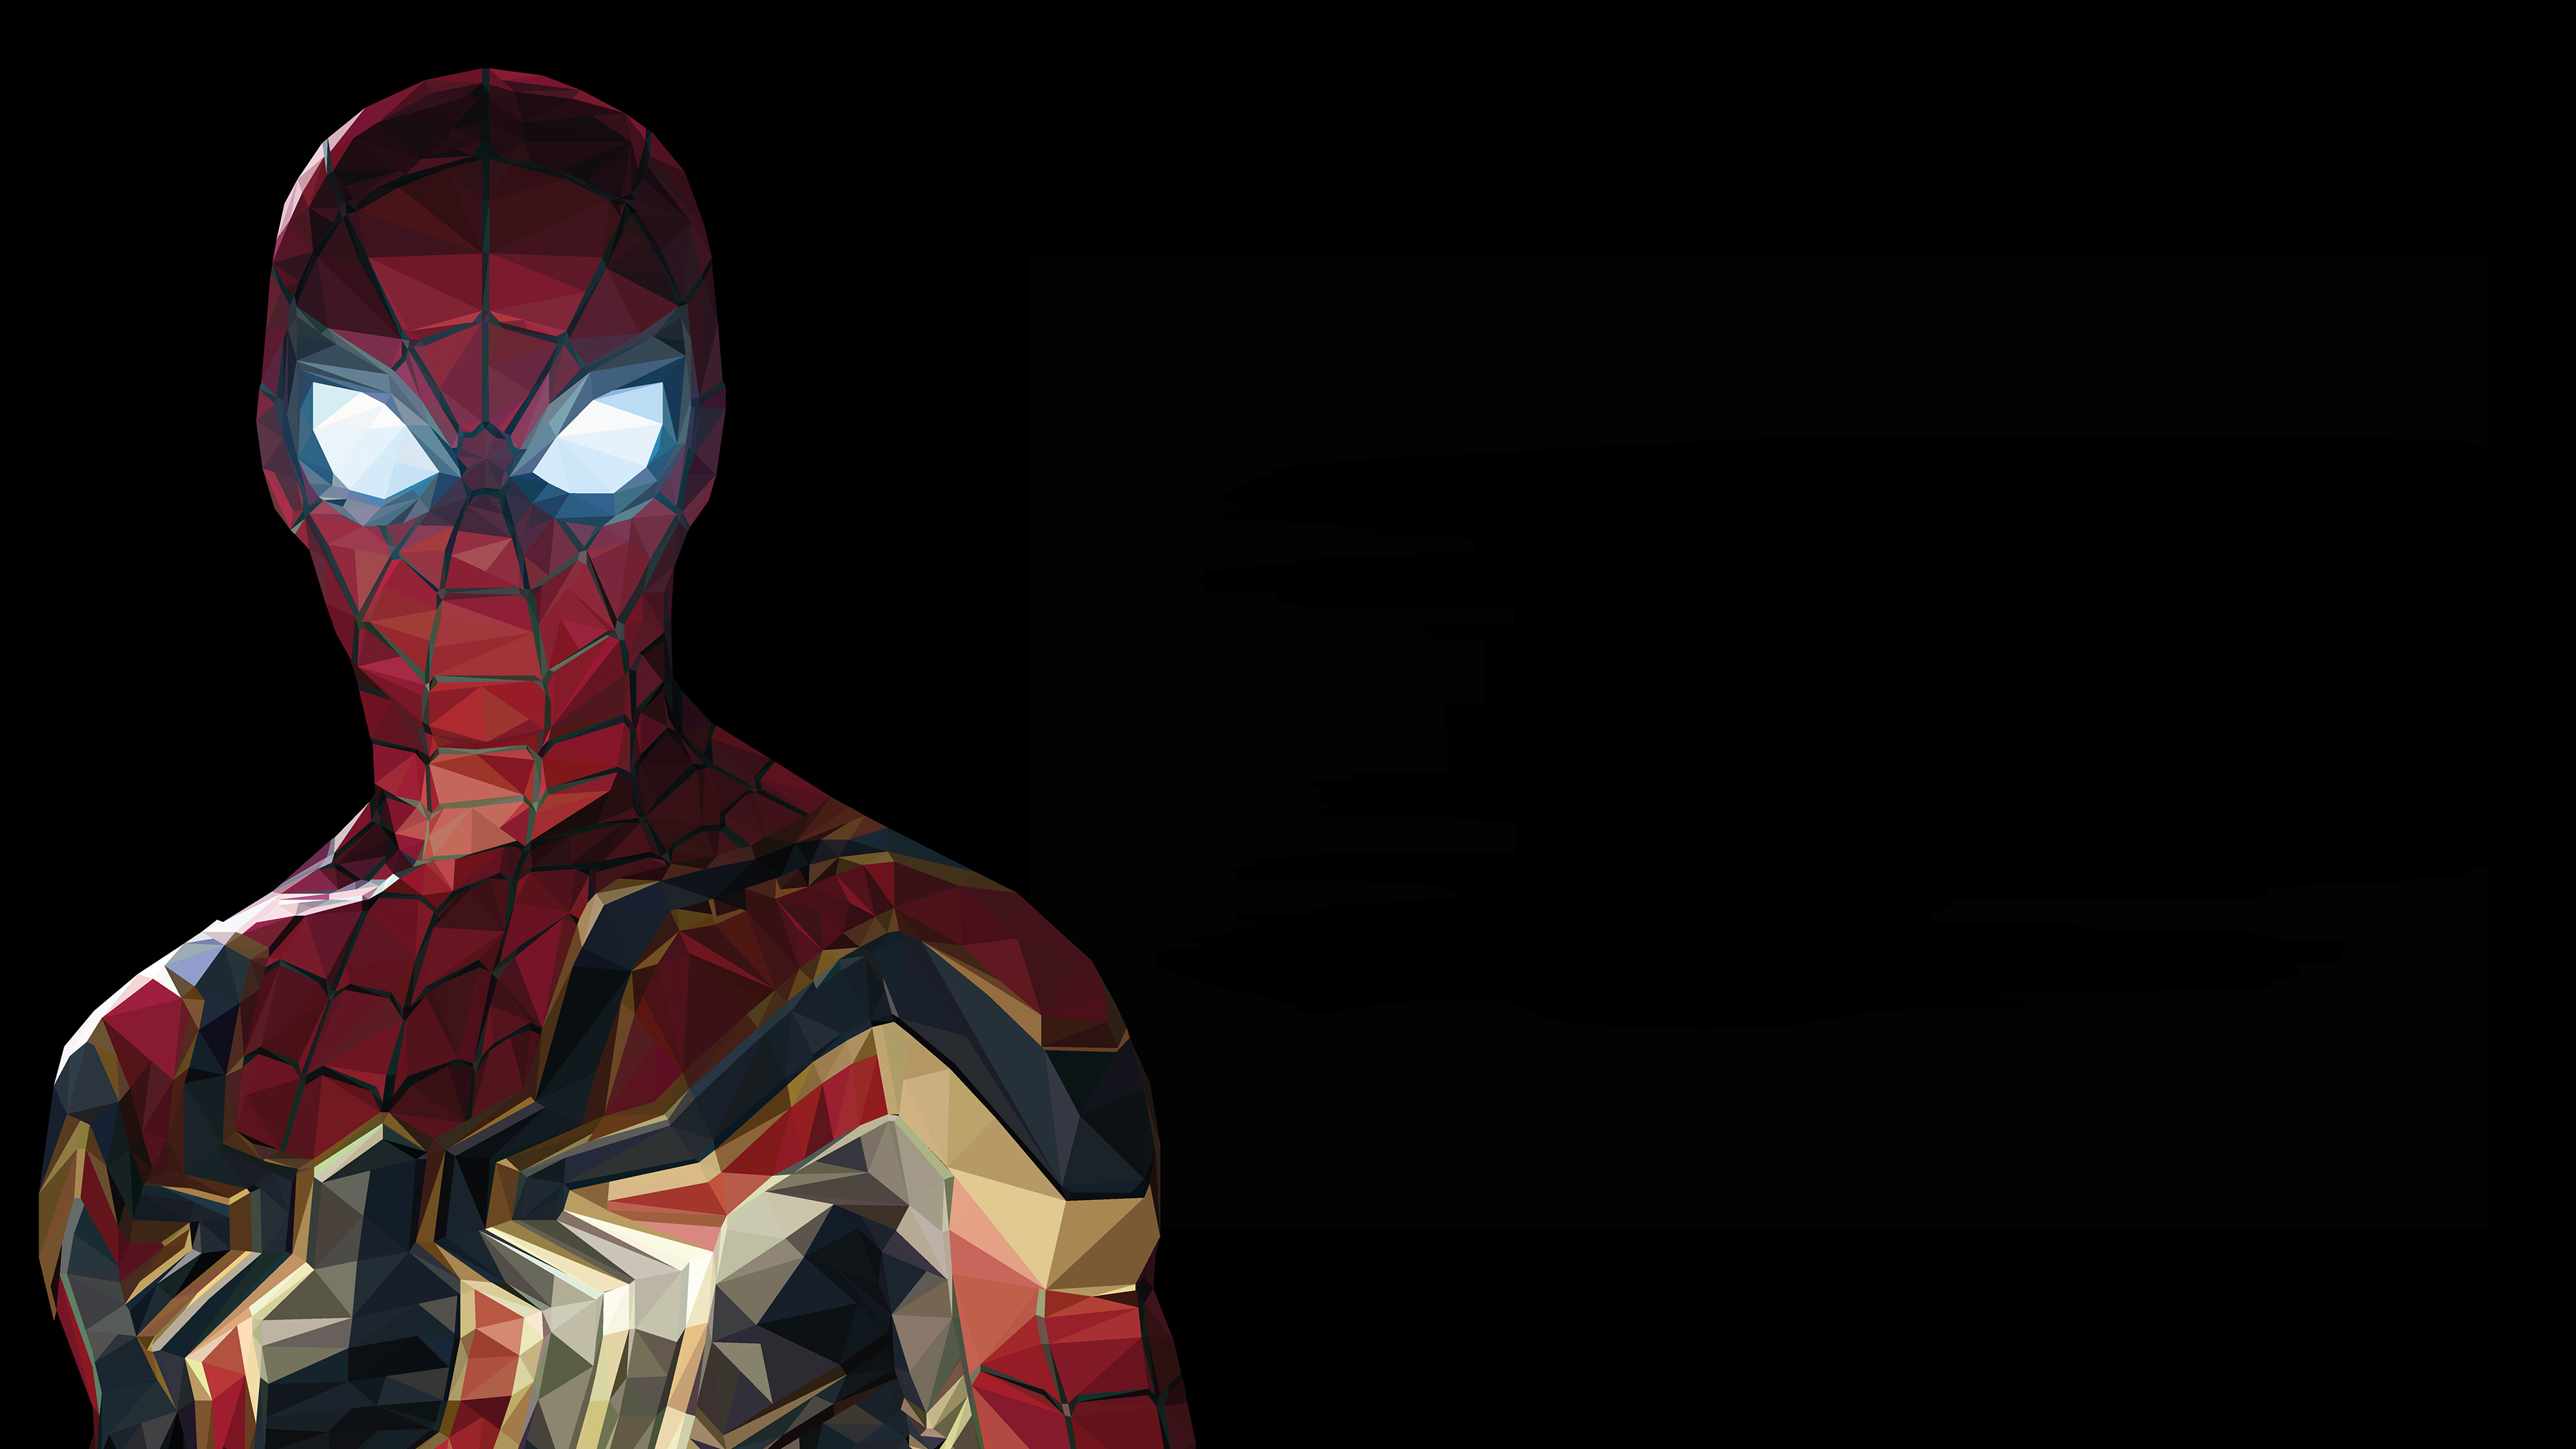 spiderman low poly 4k 1548526605 - Spiderman Low Poly 4k - superheroes wallpapers, spiderman wallpapers, hd-wallpapers, digital art wallpapers, behance wallpapers, artwork wallpapers, artist wallpapers, 4k-wallpapers